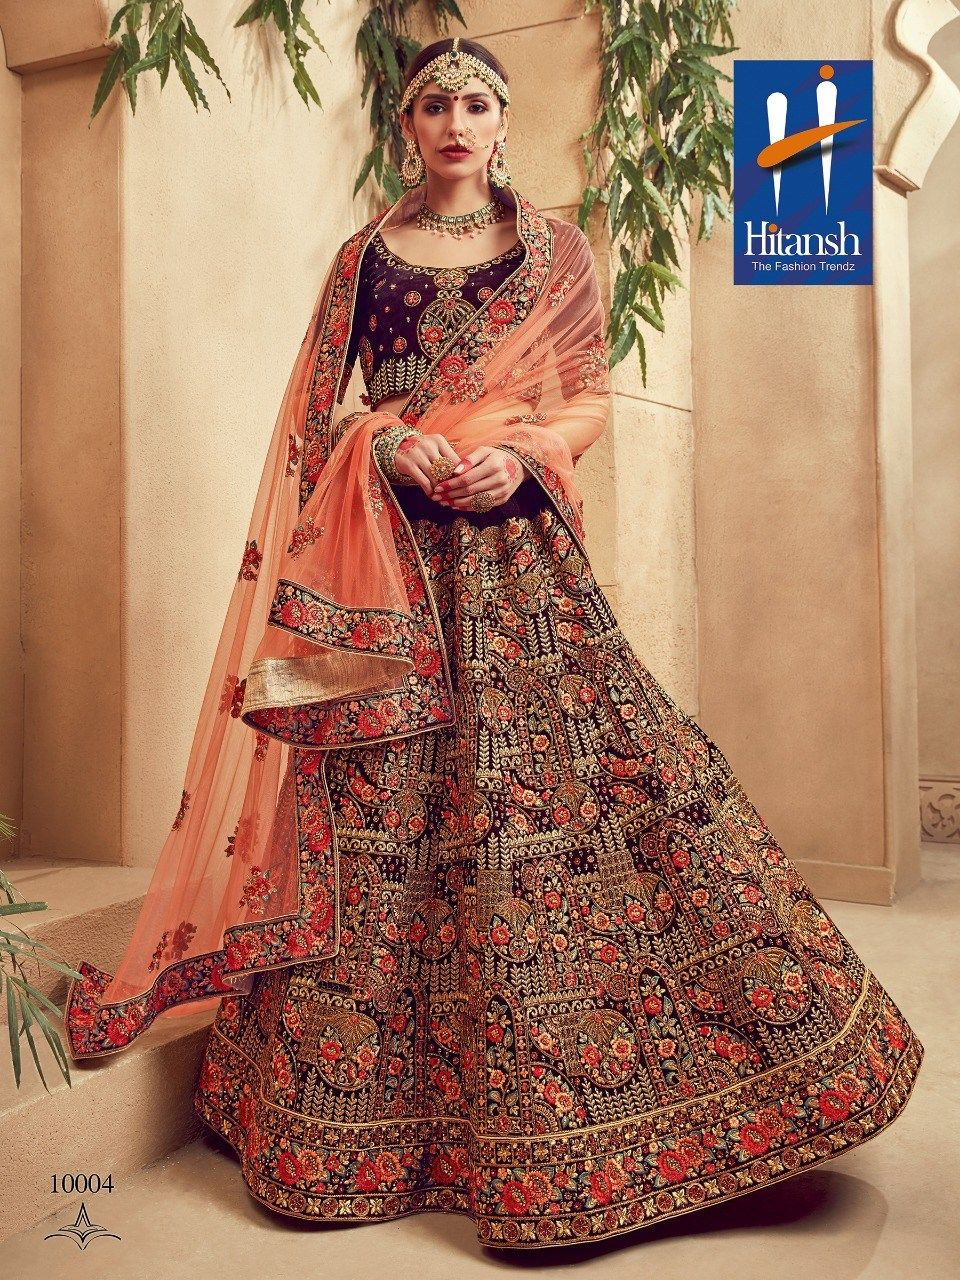 Hitansh fashion the royal bride designer wedding lehenga choli